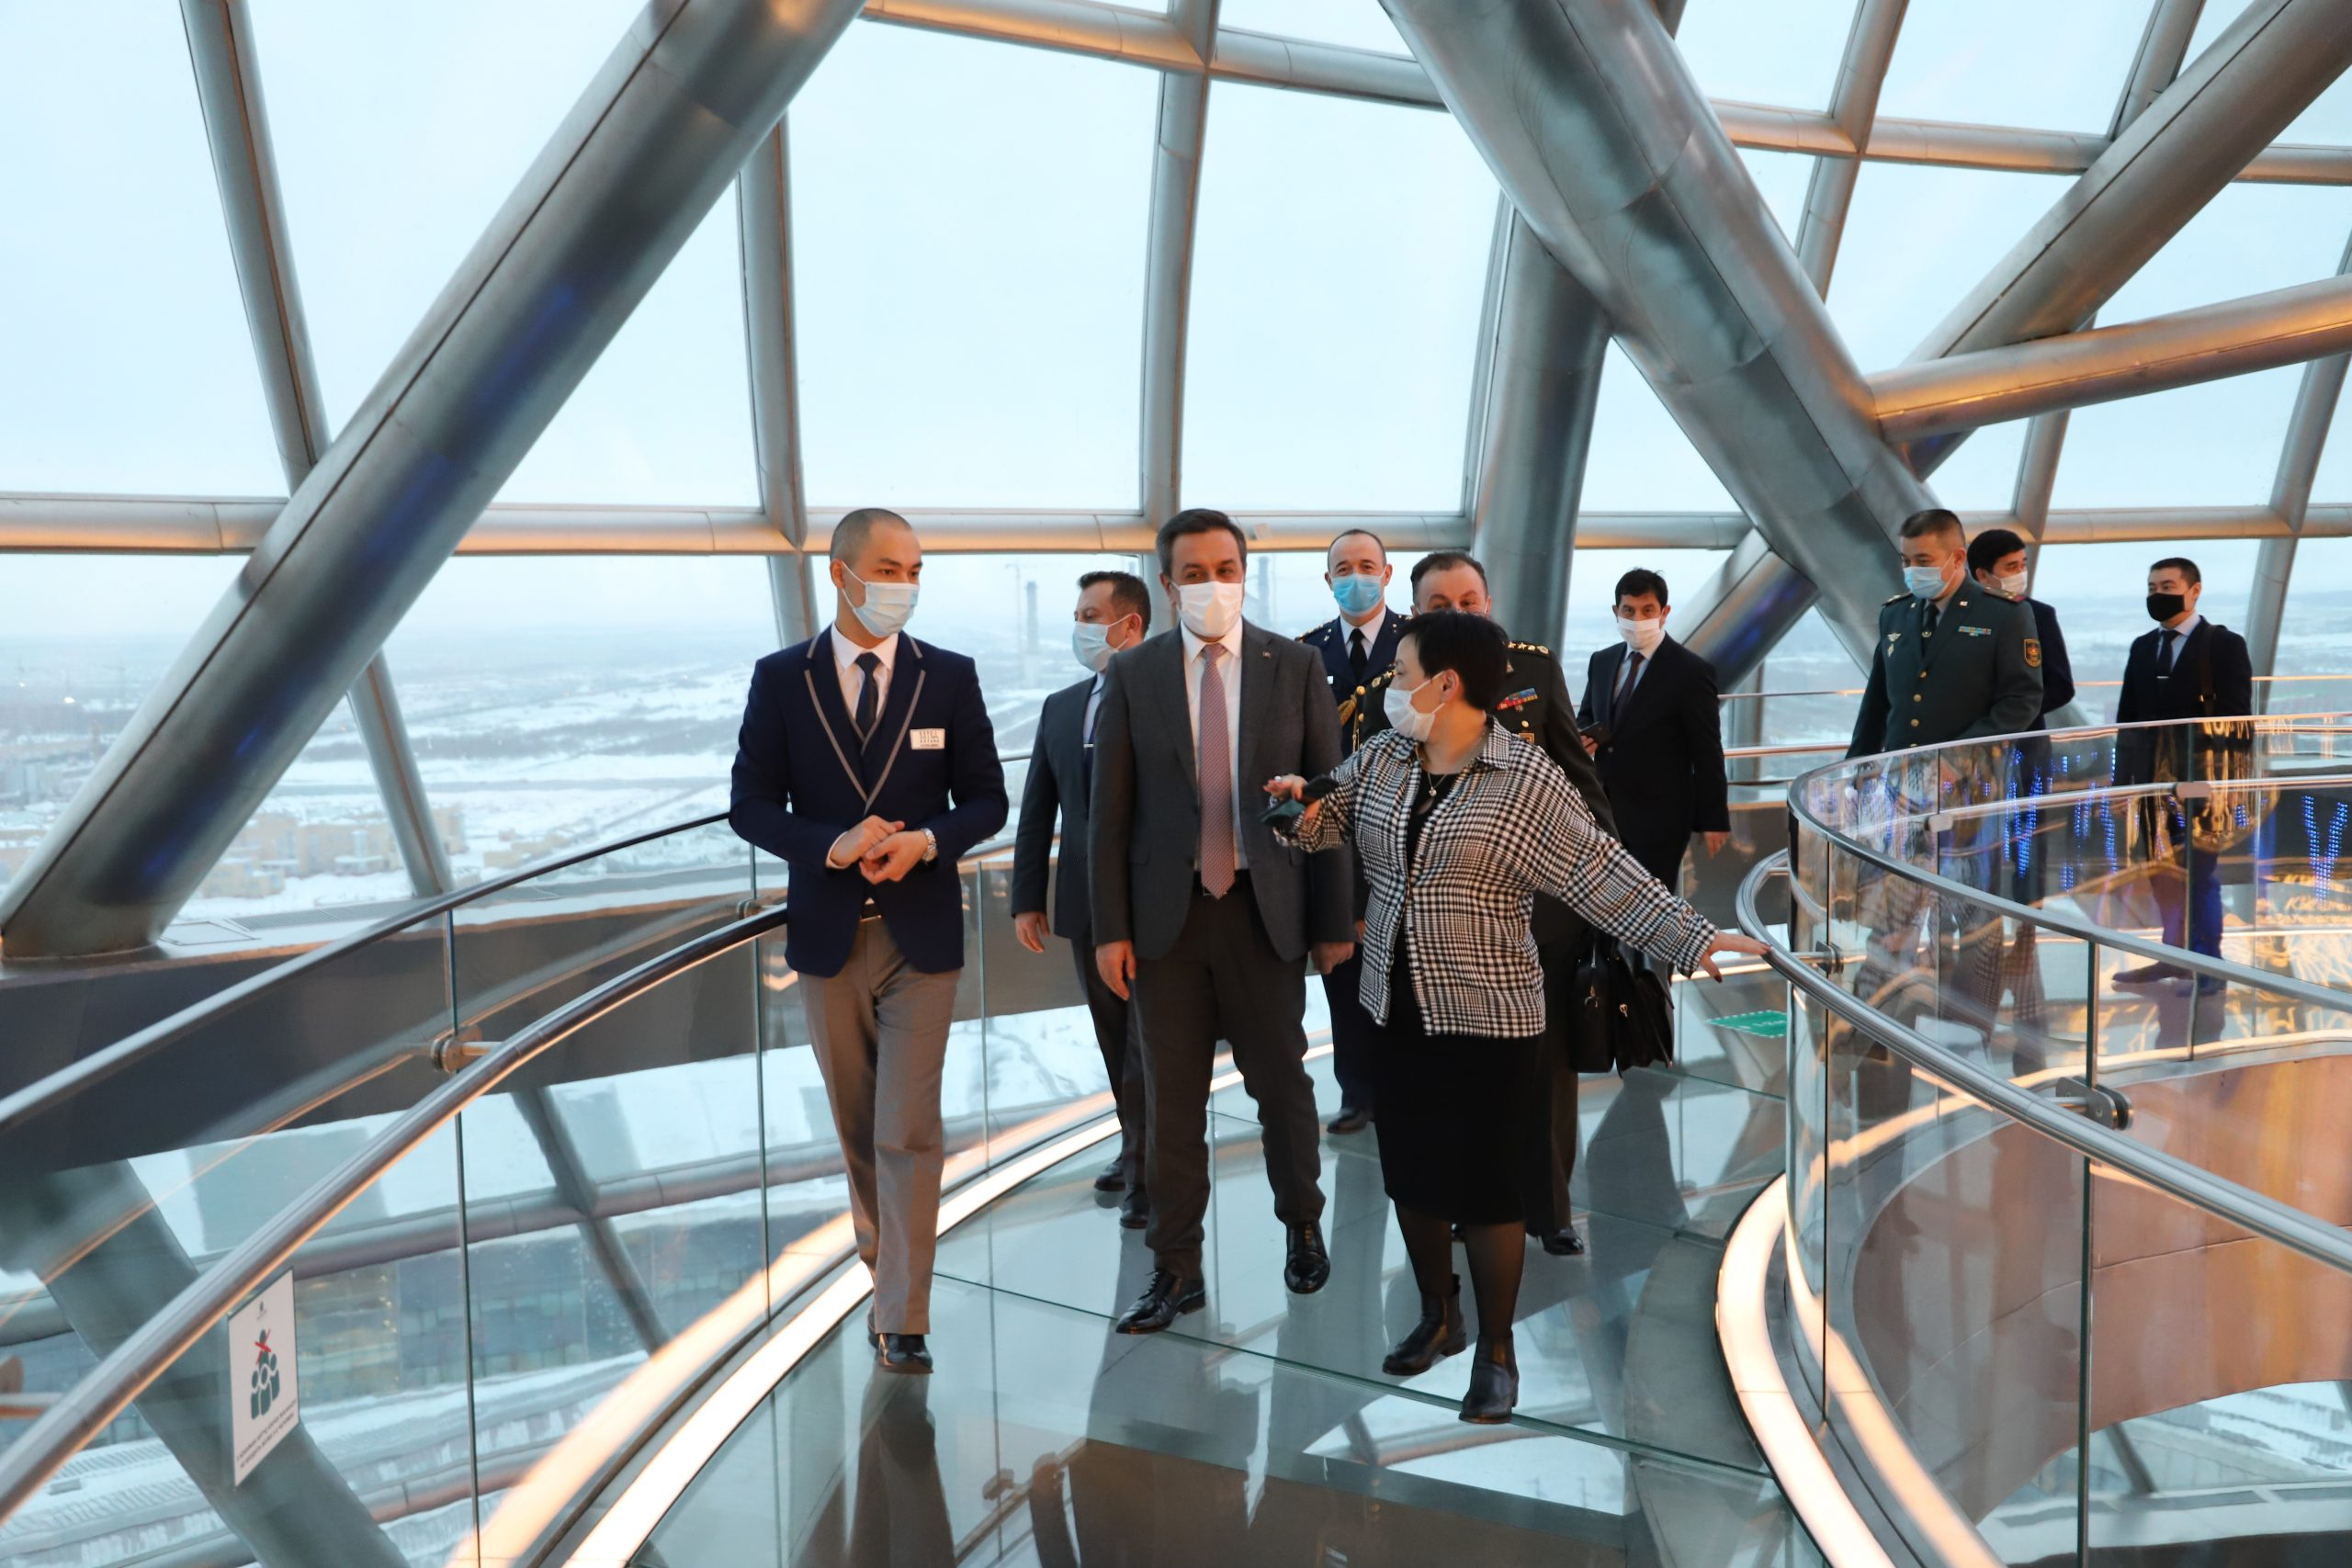 Deputy Minister of National Defense of the Republic of Turkey visited NUR ALEM Future Energy Museum